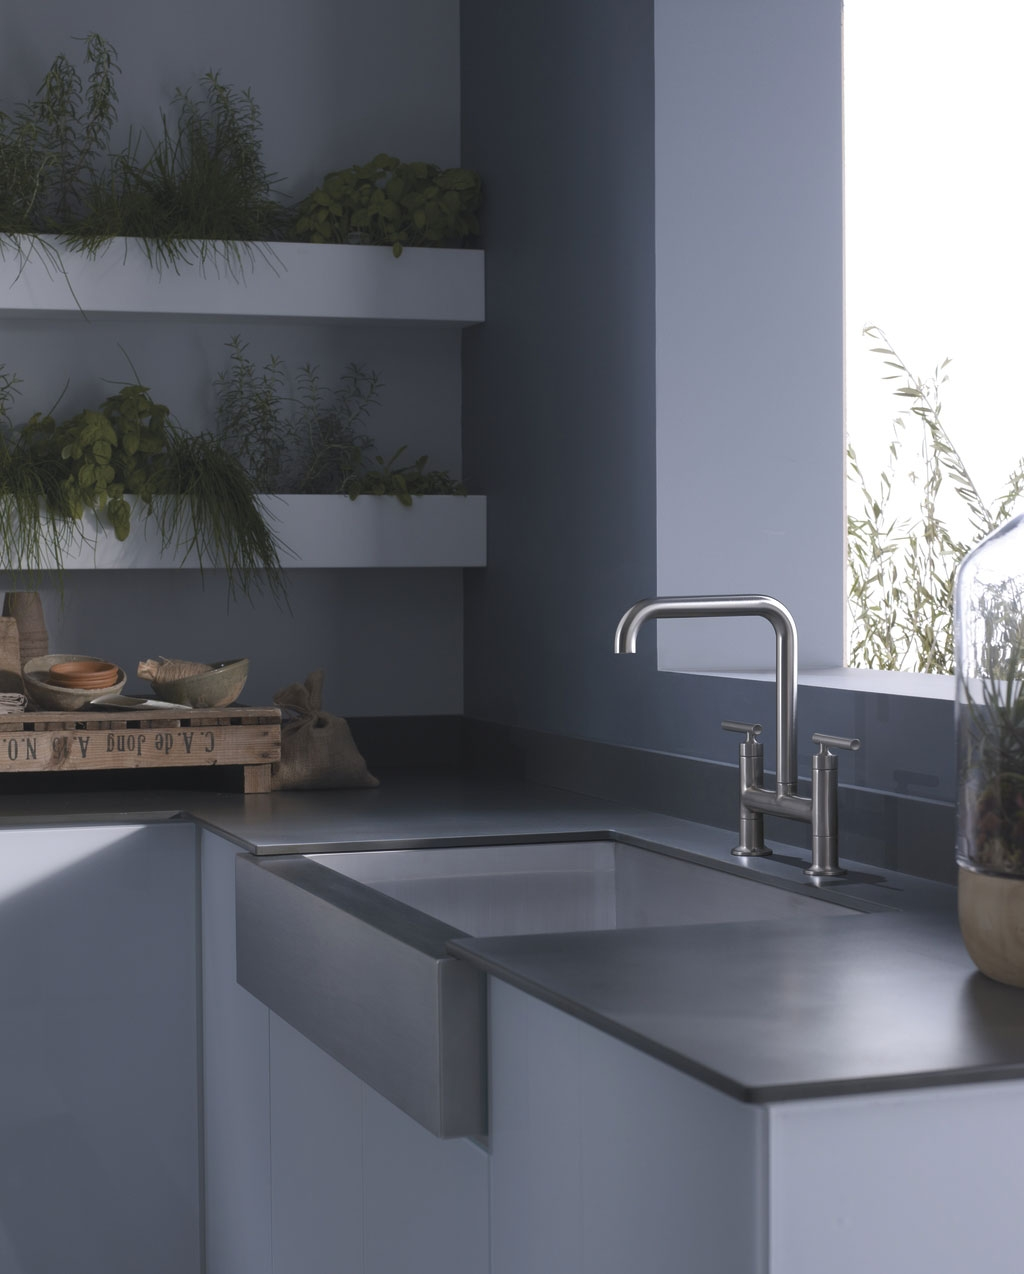 Ideas, bathroom design chic k 780 vs cruette pull down kitchen faucet with regard to sizing 1024 x 1274  .